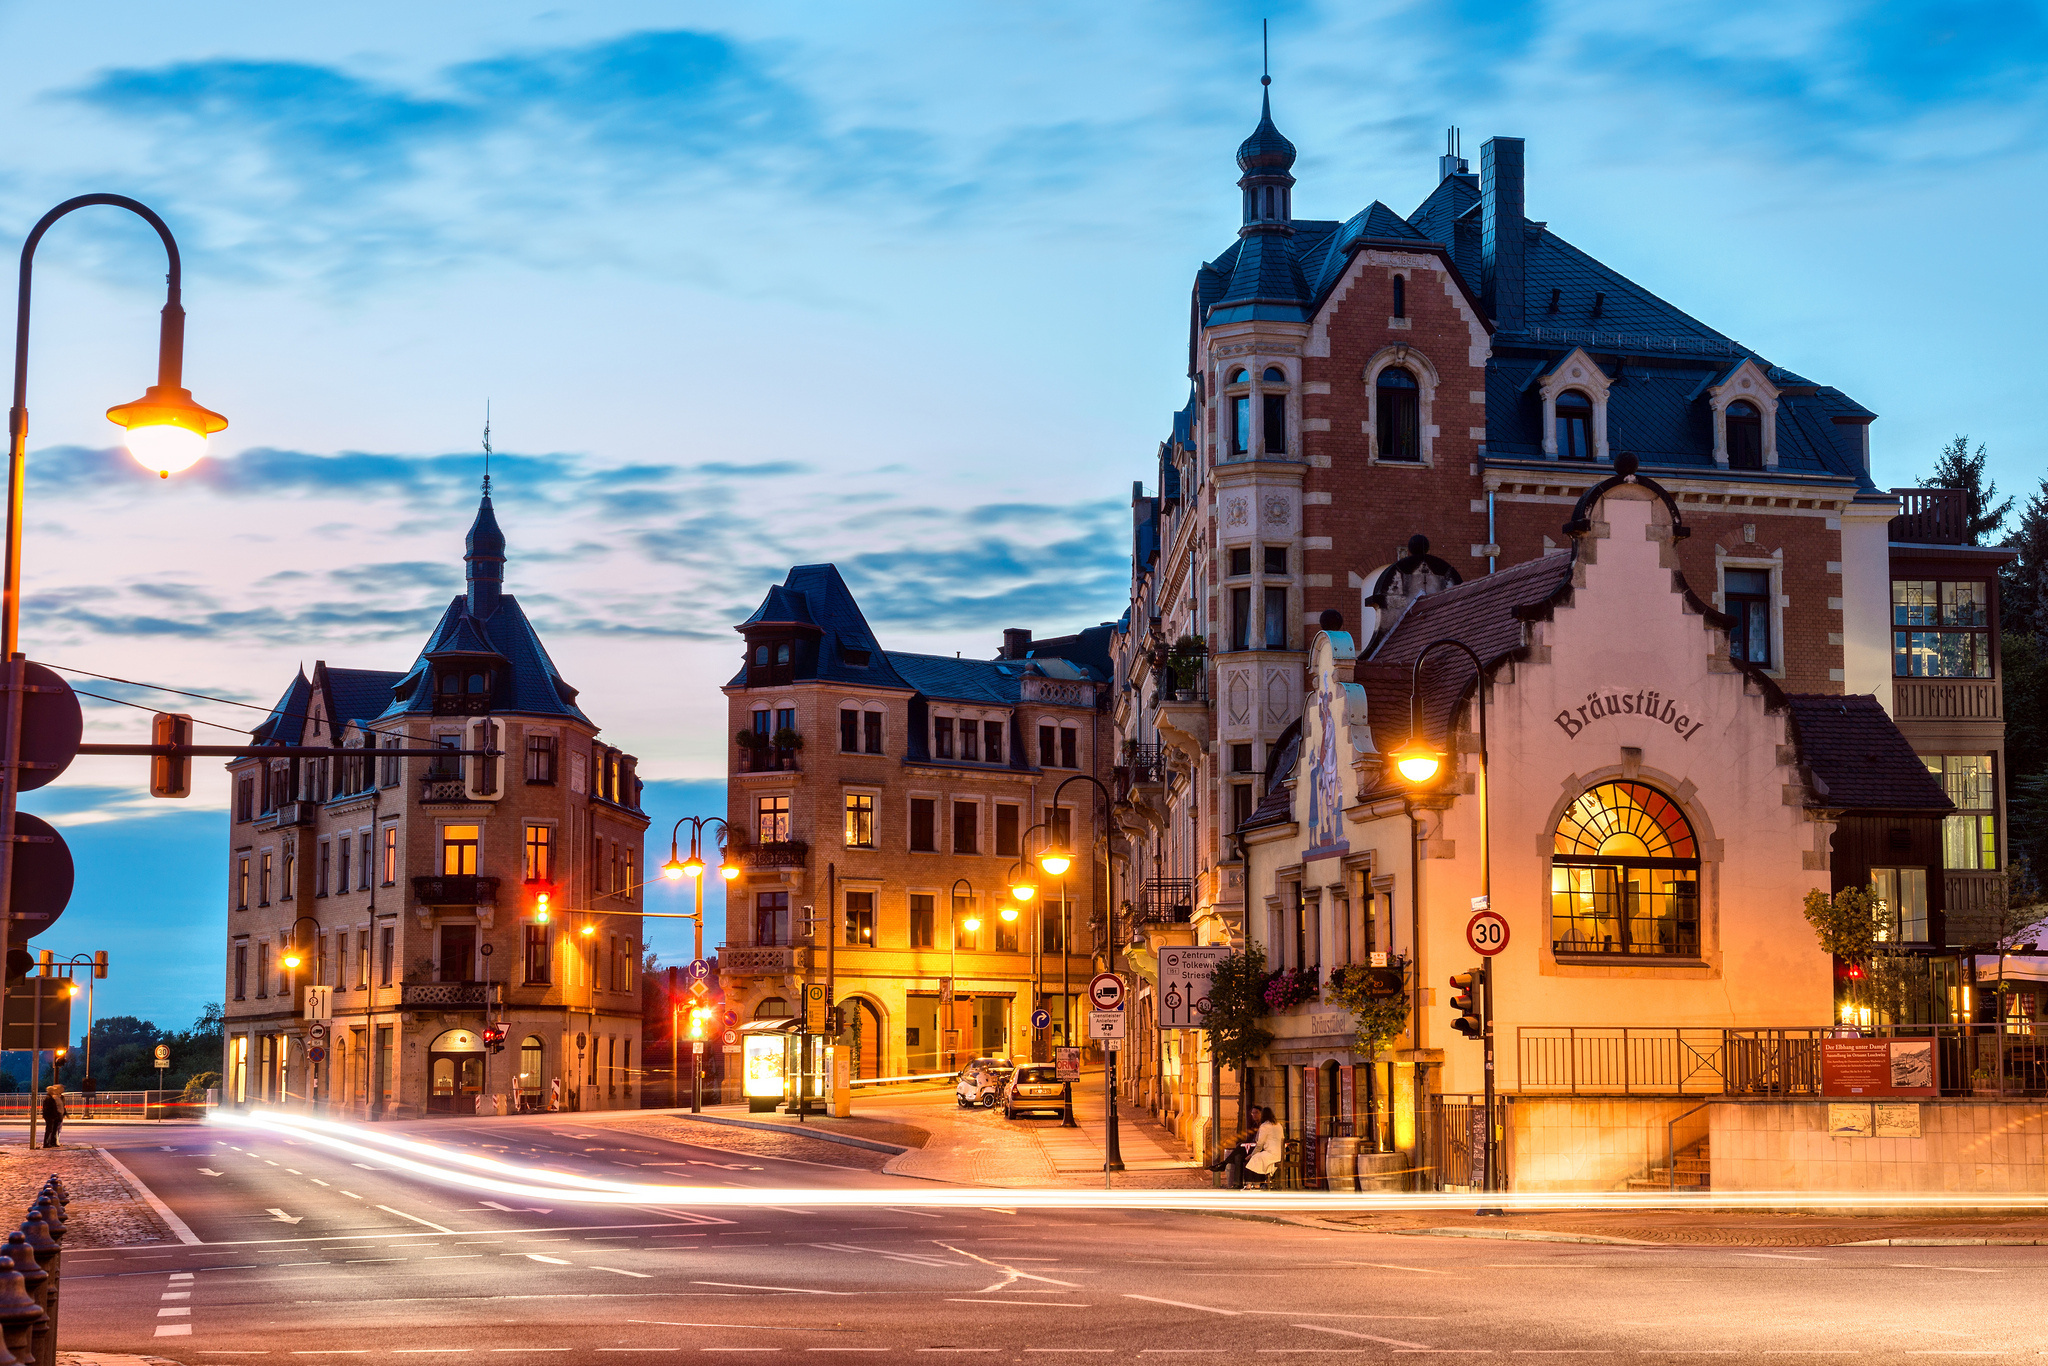 Germany City Street Morning Wallpapers - 2048x1366 - 1505173 for Morning City Street Wallpaper  279cpg